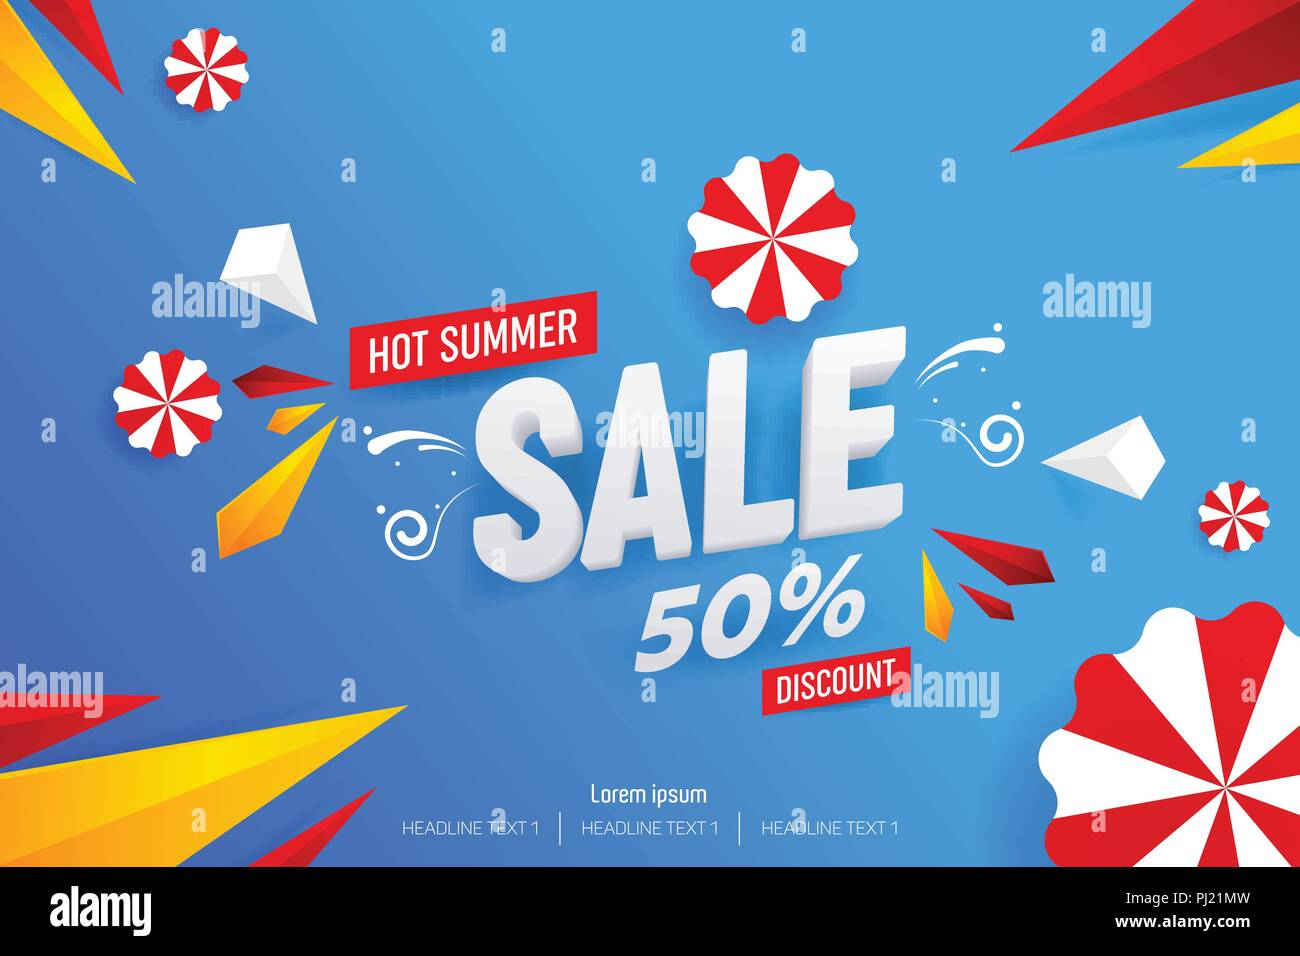 Abstract Hot Summer Sale 50% Discount Vector Background Illustration - Stock Vector